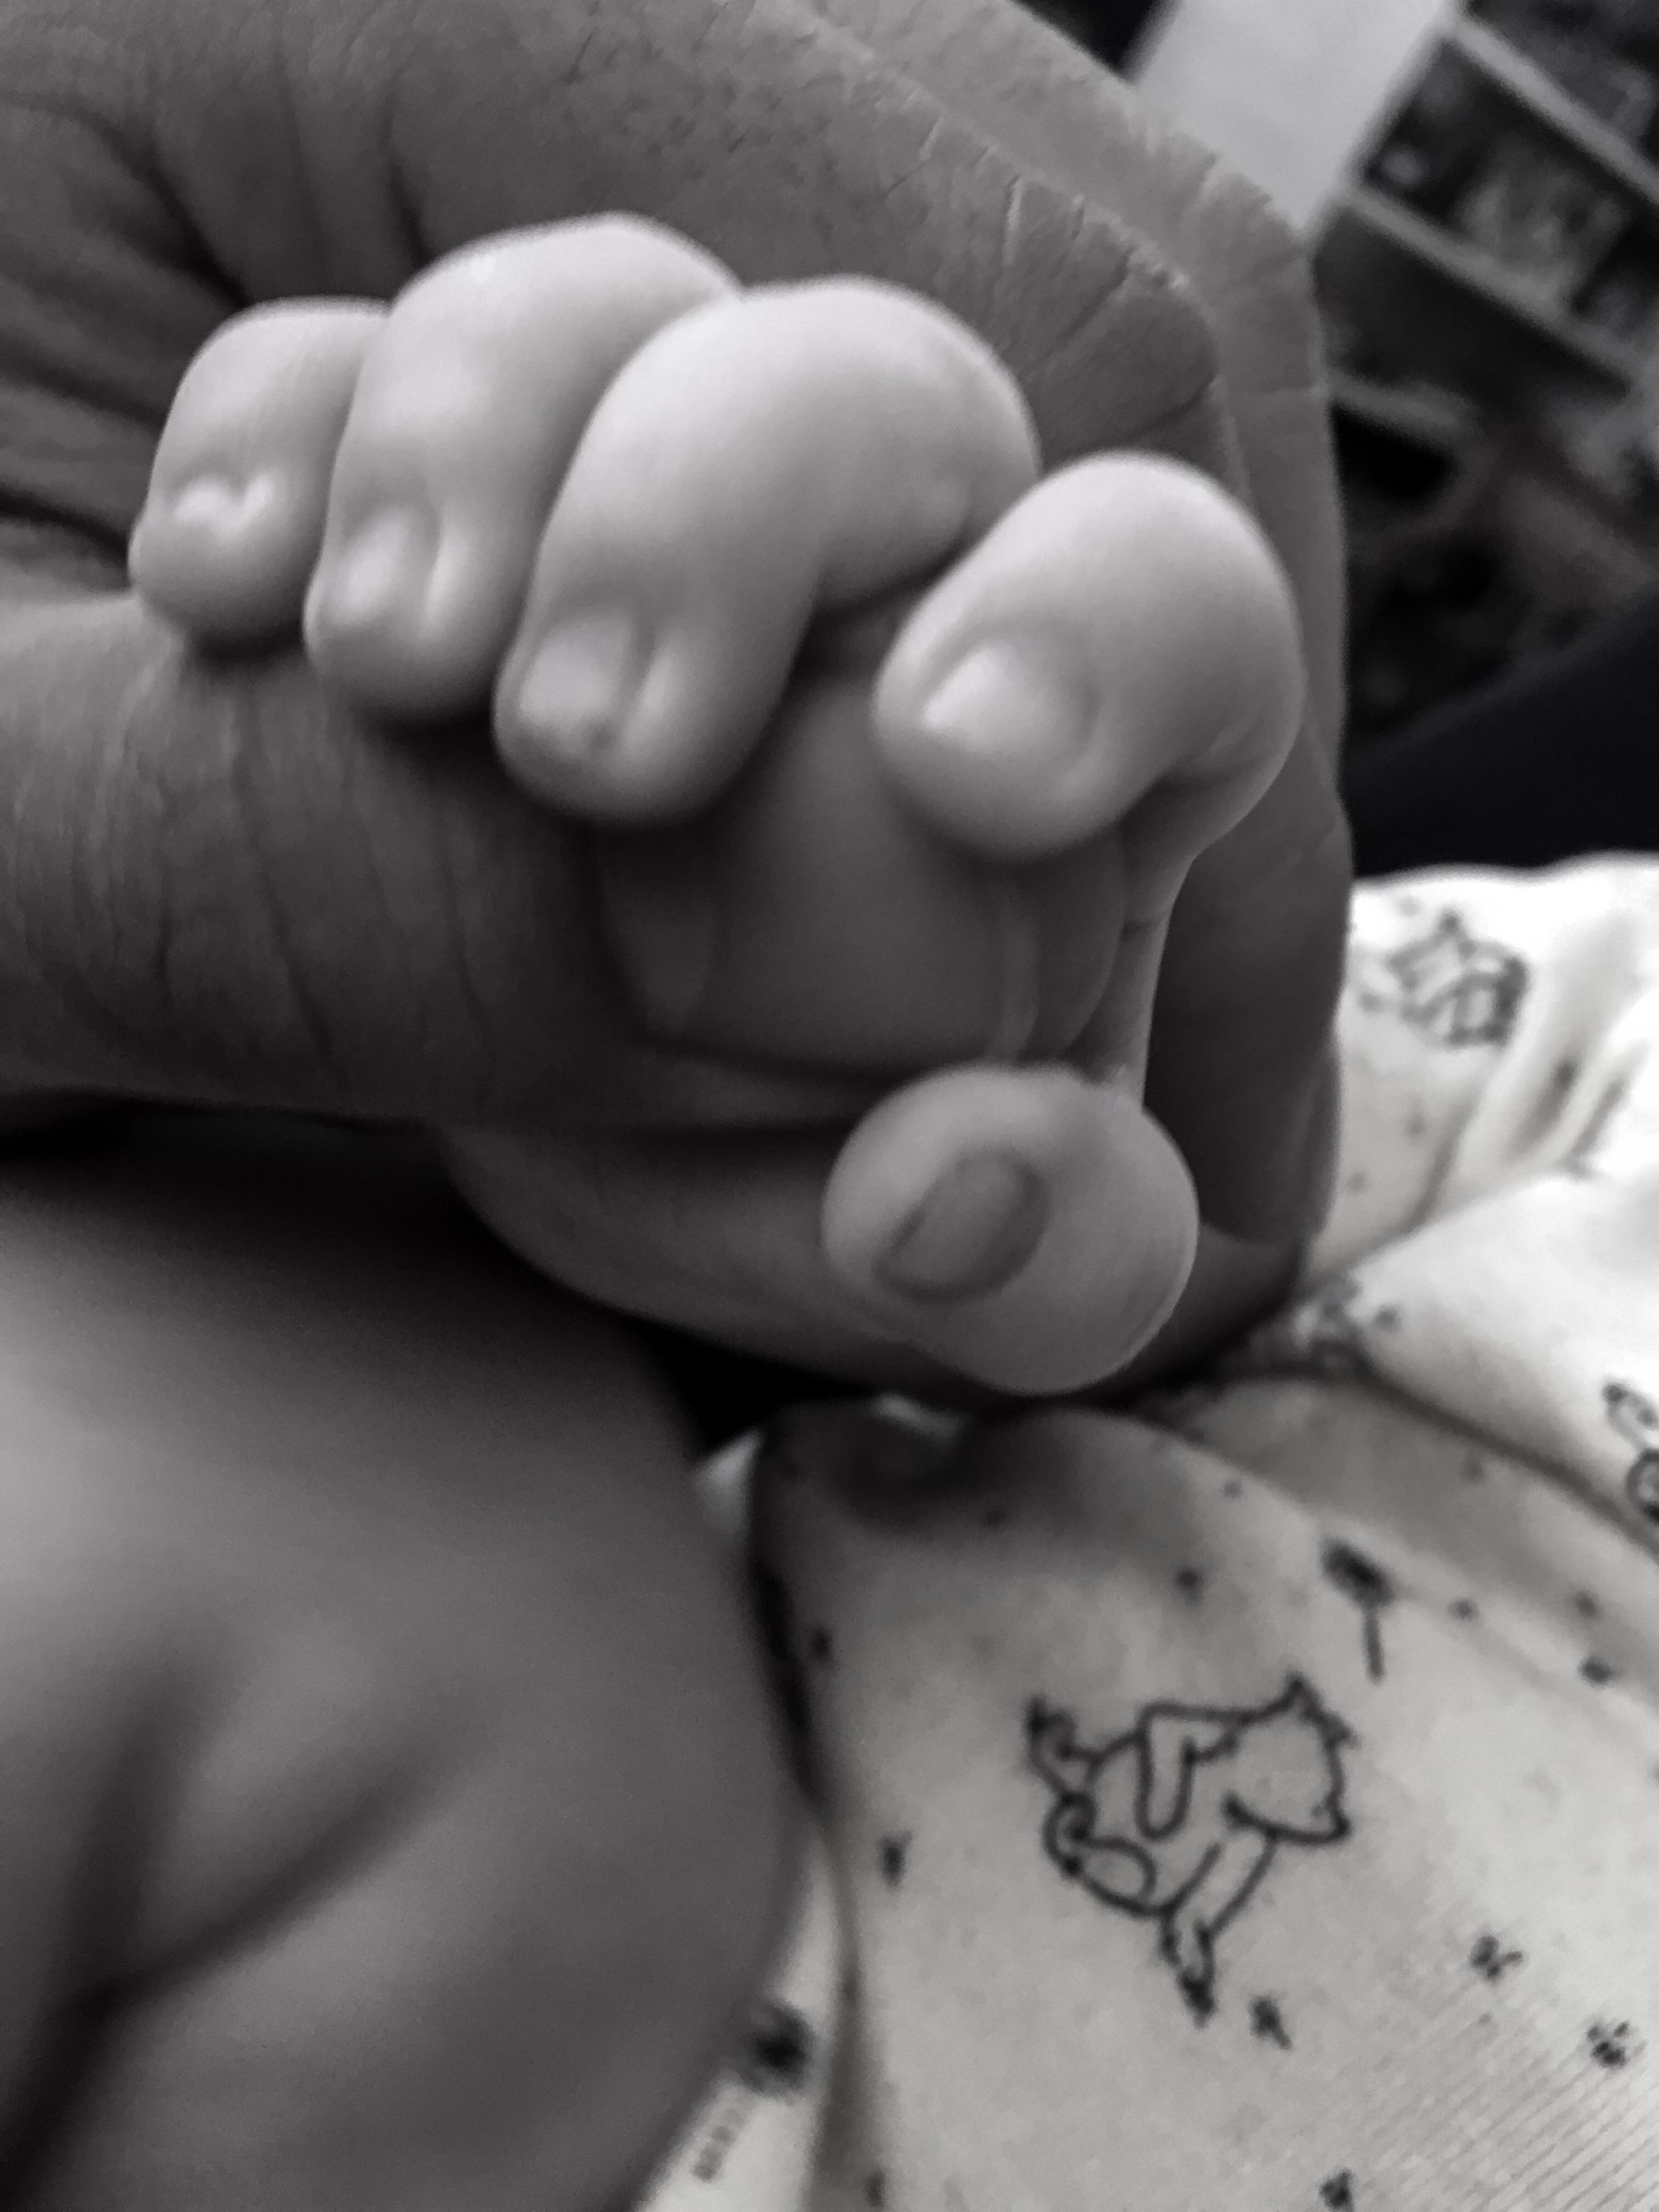 person, indoors, love, close-up, bonding, holding, togetherness, part of, baby, human finger, leisure activity, lifestyles, father, family with one child, care, babyhood, unknown gender, family, toddler, focus on foreground, selective focus, personal perspective